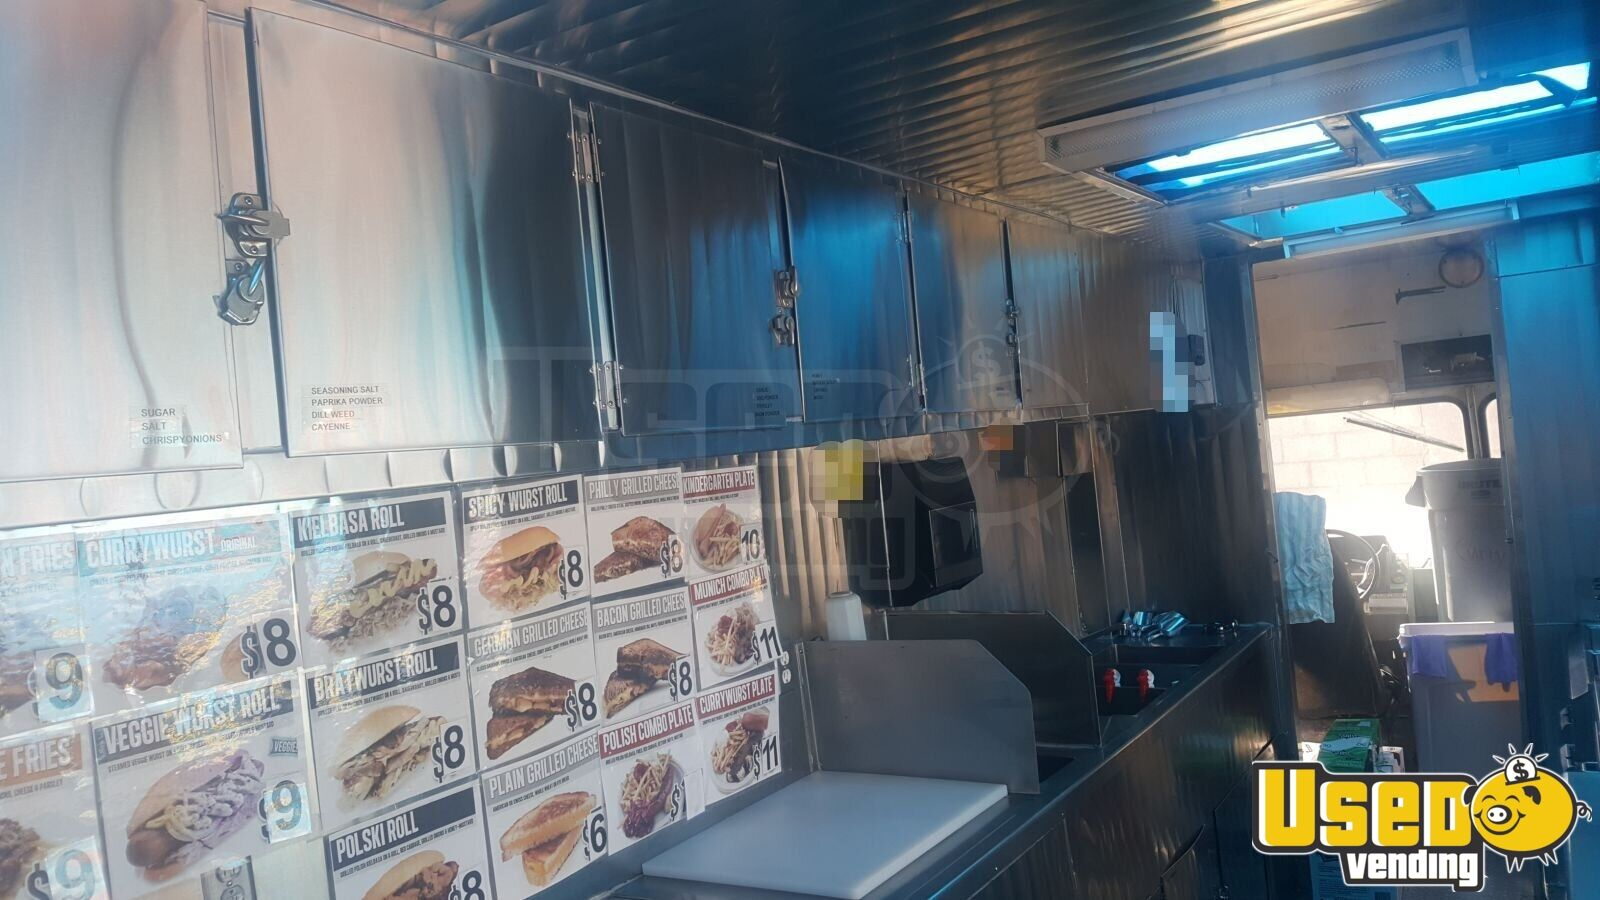 1991 Chevi P30 All-purpose Food Truck Stainless Steel Wall Covers Nevada for Sale - 4